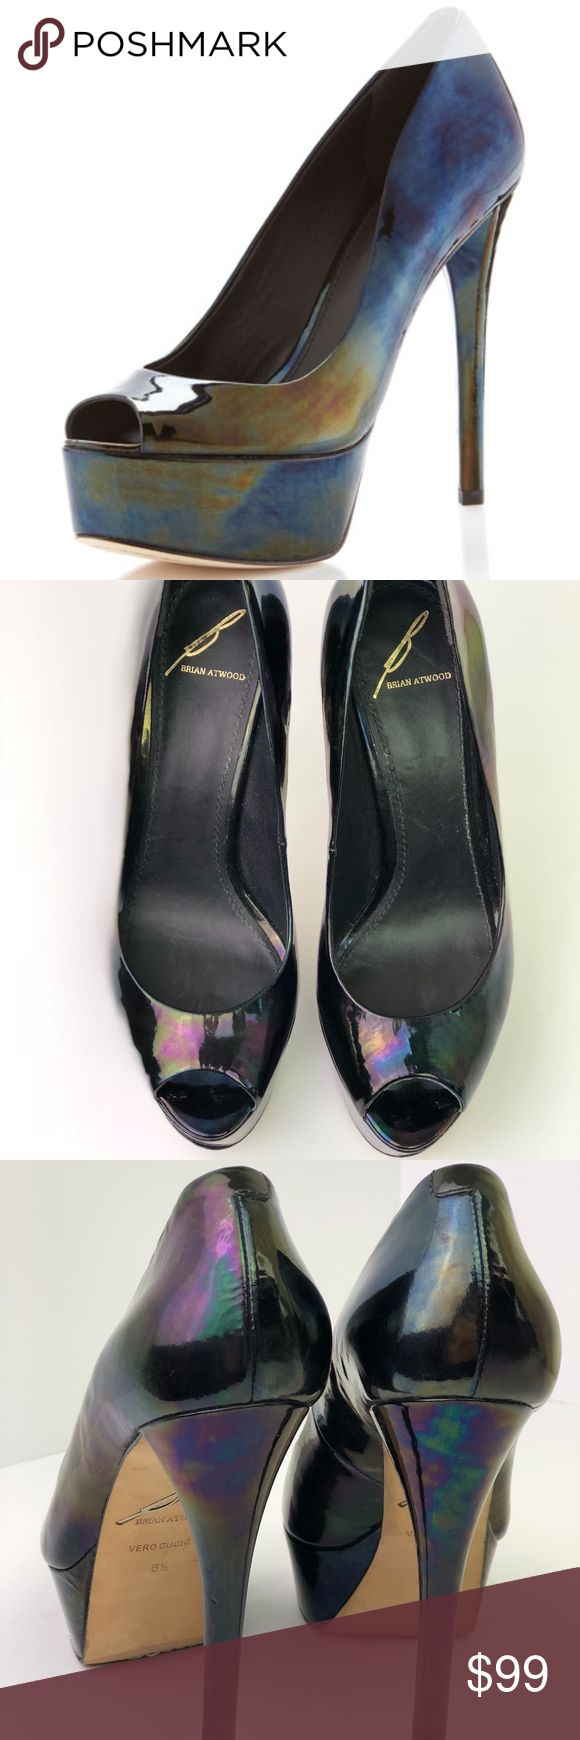 """Brian Atwood Sexy Bambola Platform Pump Patent Hot MSRP $345 Sold out  Sz 6.5 Color Black Oil Slick  ASO Kendall Jenner Halle Berry Rita Ora Anna Kendrick Bella Thorne  Opalescent patent radiates subtle colors across a lofty open peep toe pump w/wrapped heel+platform Black shows hints of rainbow colors as you walk!  Approx heel: 5""""  1.5"""" platform (=3.5"""" heel)  EUC hardly worn, no box/dust bag Right sole slightly lifting under toe area+2 small scuffs@left side area-see last pic Patent leather…"""